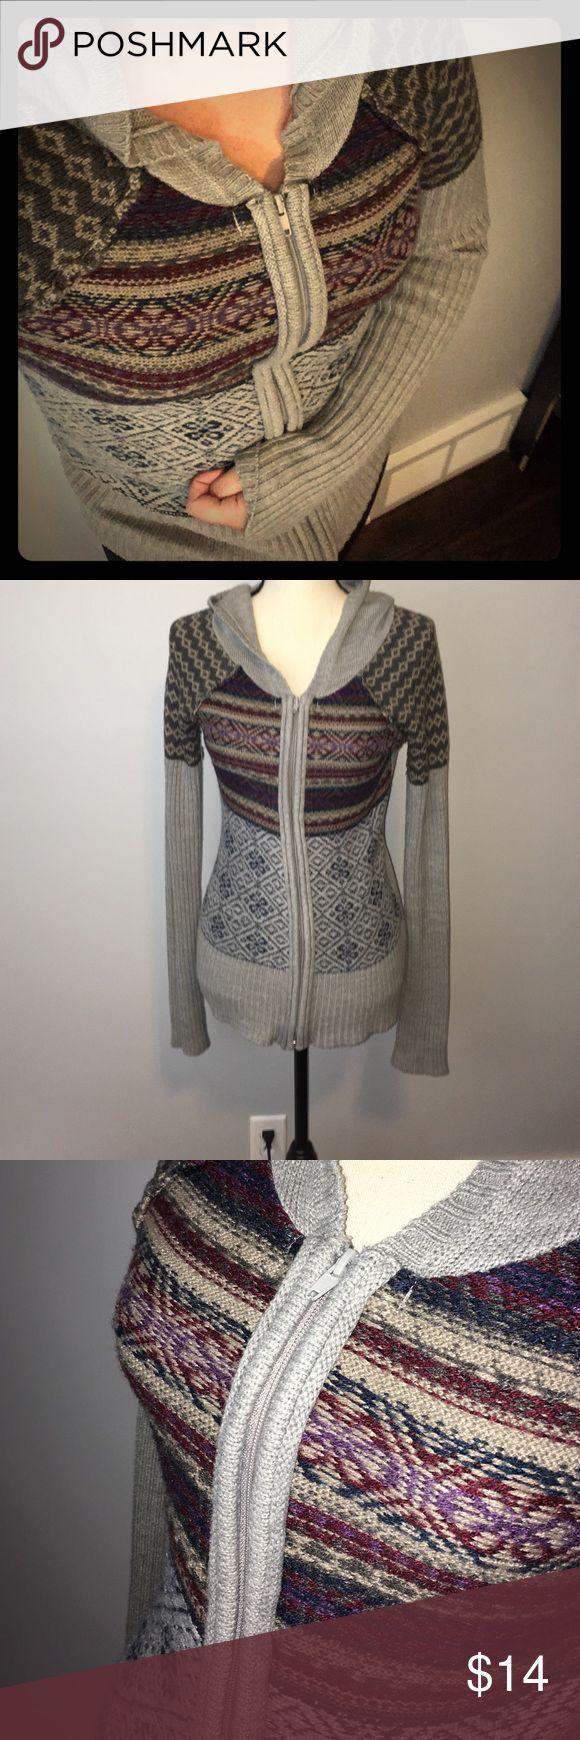 SALE BKE tribal zip up hoodie Knit Aztec sweater Excellent condition! 0 signs of wear or usage. This is a BKE women's zip up sweater from the Buckle. The stitching gives off an Aztec/tribal vibe. Cute! BKE Sweaters Cardigans